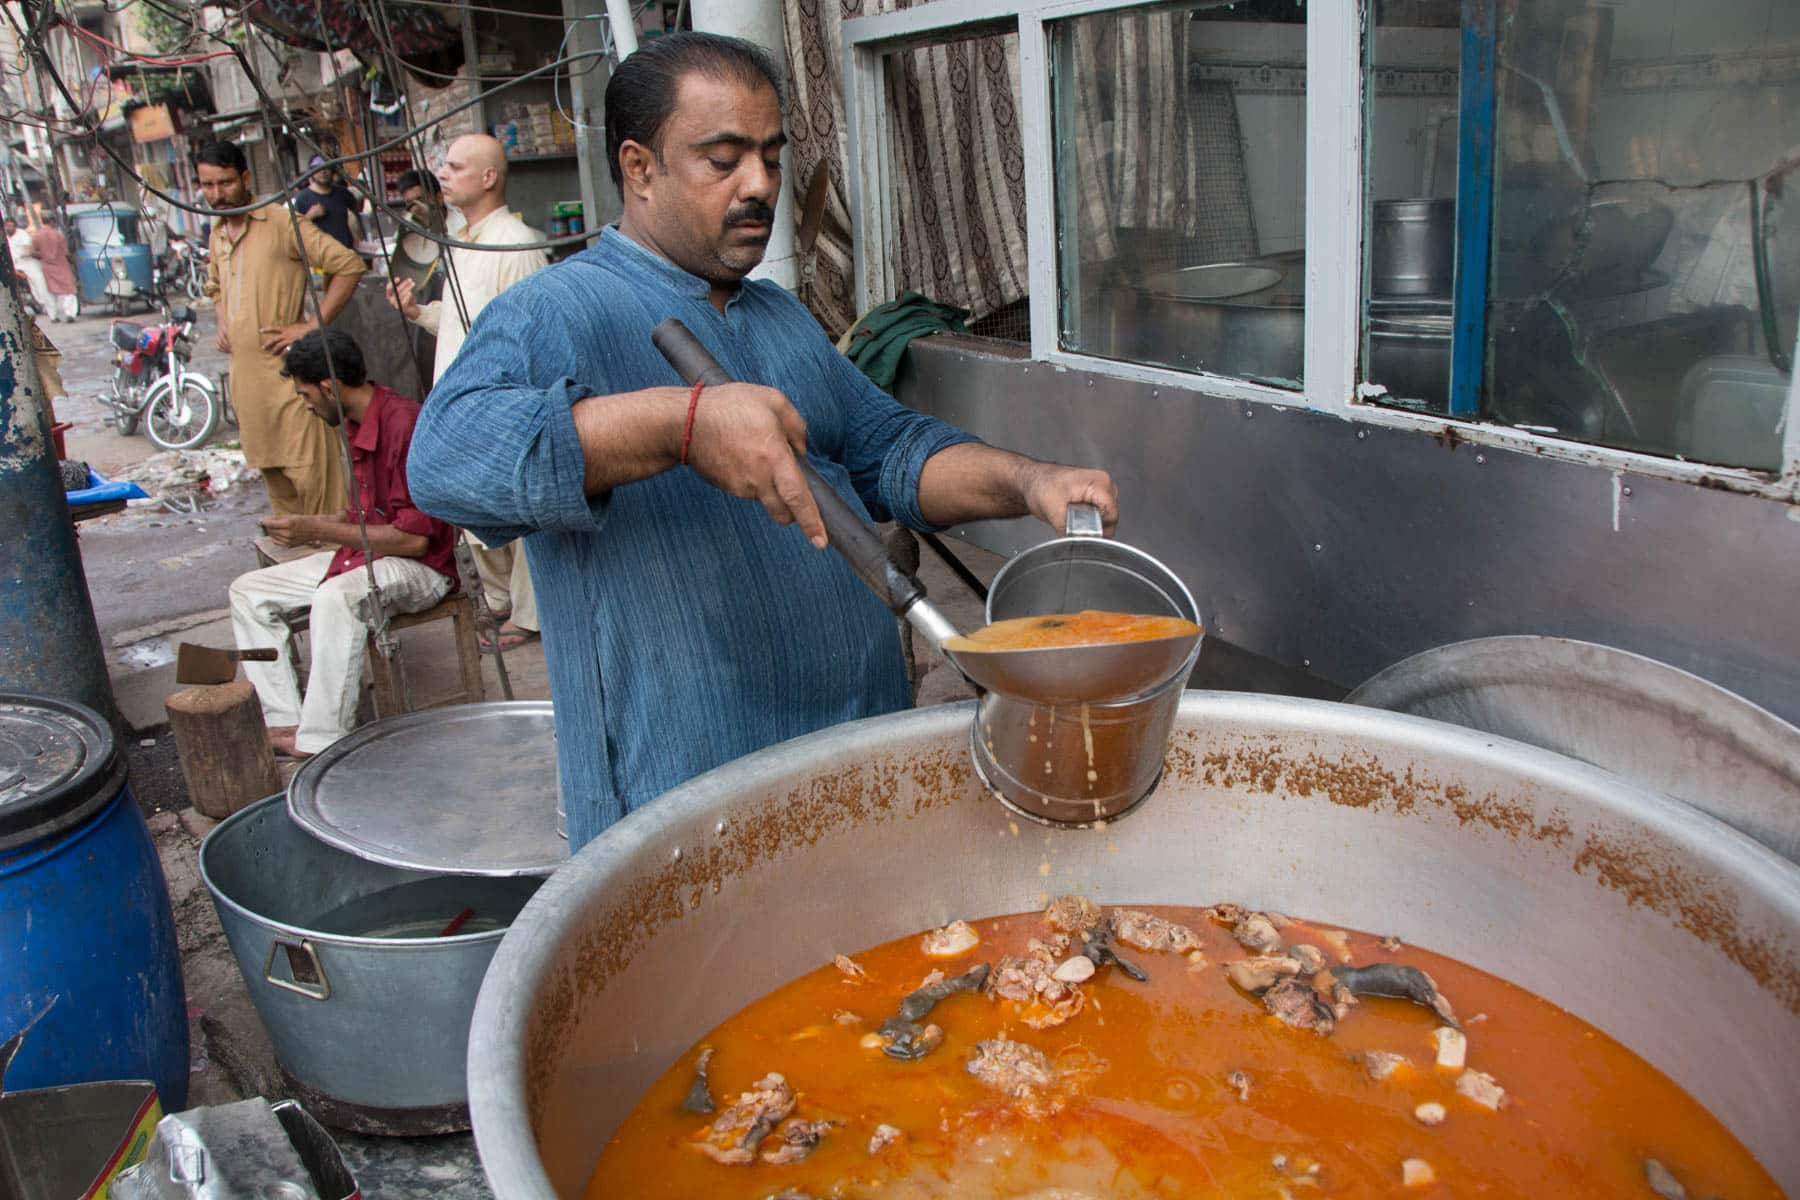 Pakistan bucket list - Man making soup in the walled city of Lahore - Lost With Purpose travel blog